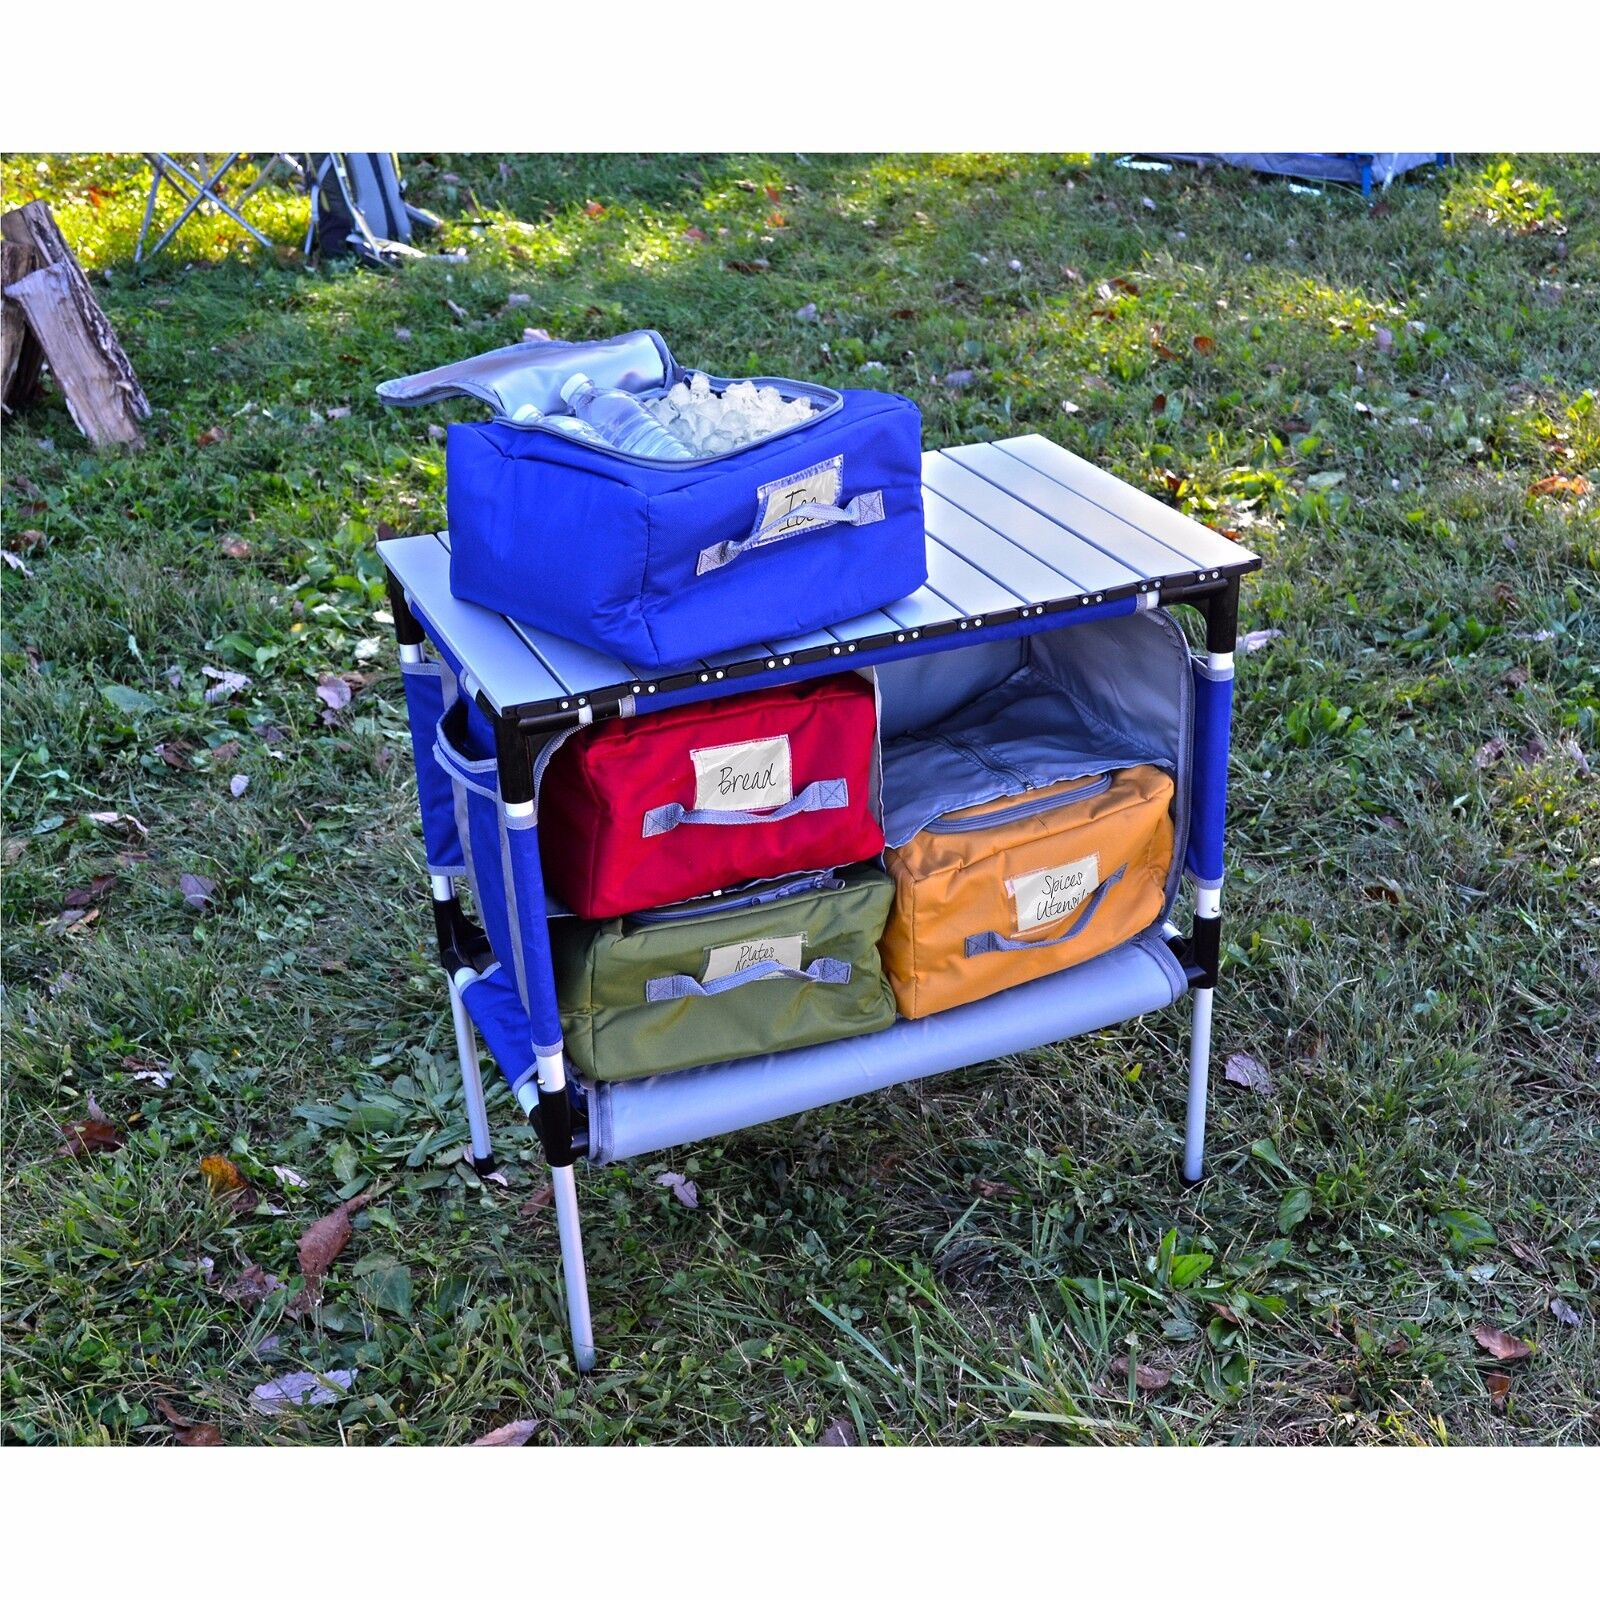 Camp Kitchen Portable Camping Table Roll Up Camp Kitchen Storage Organizer